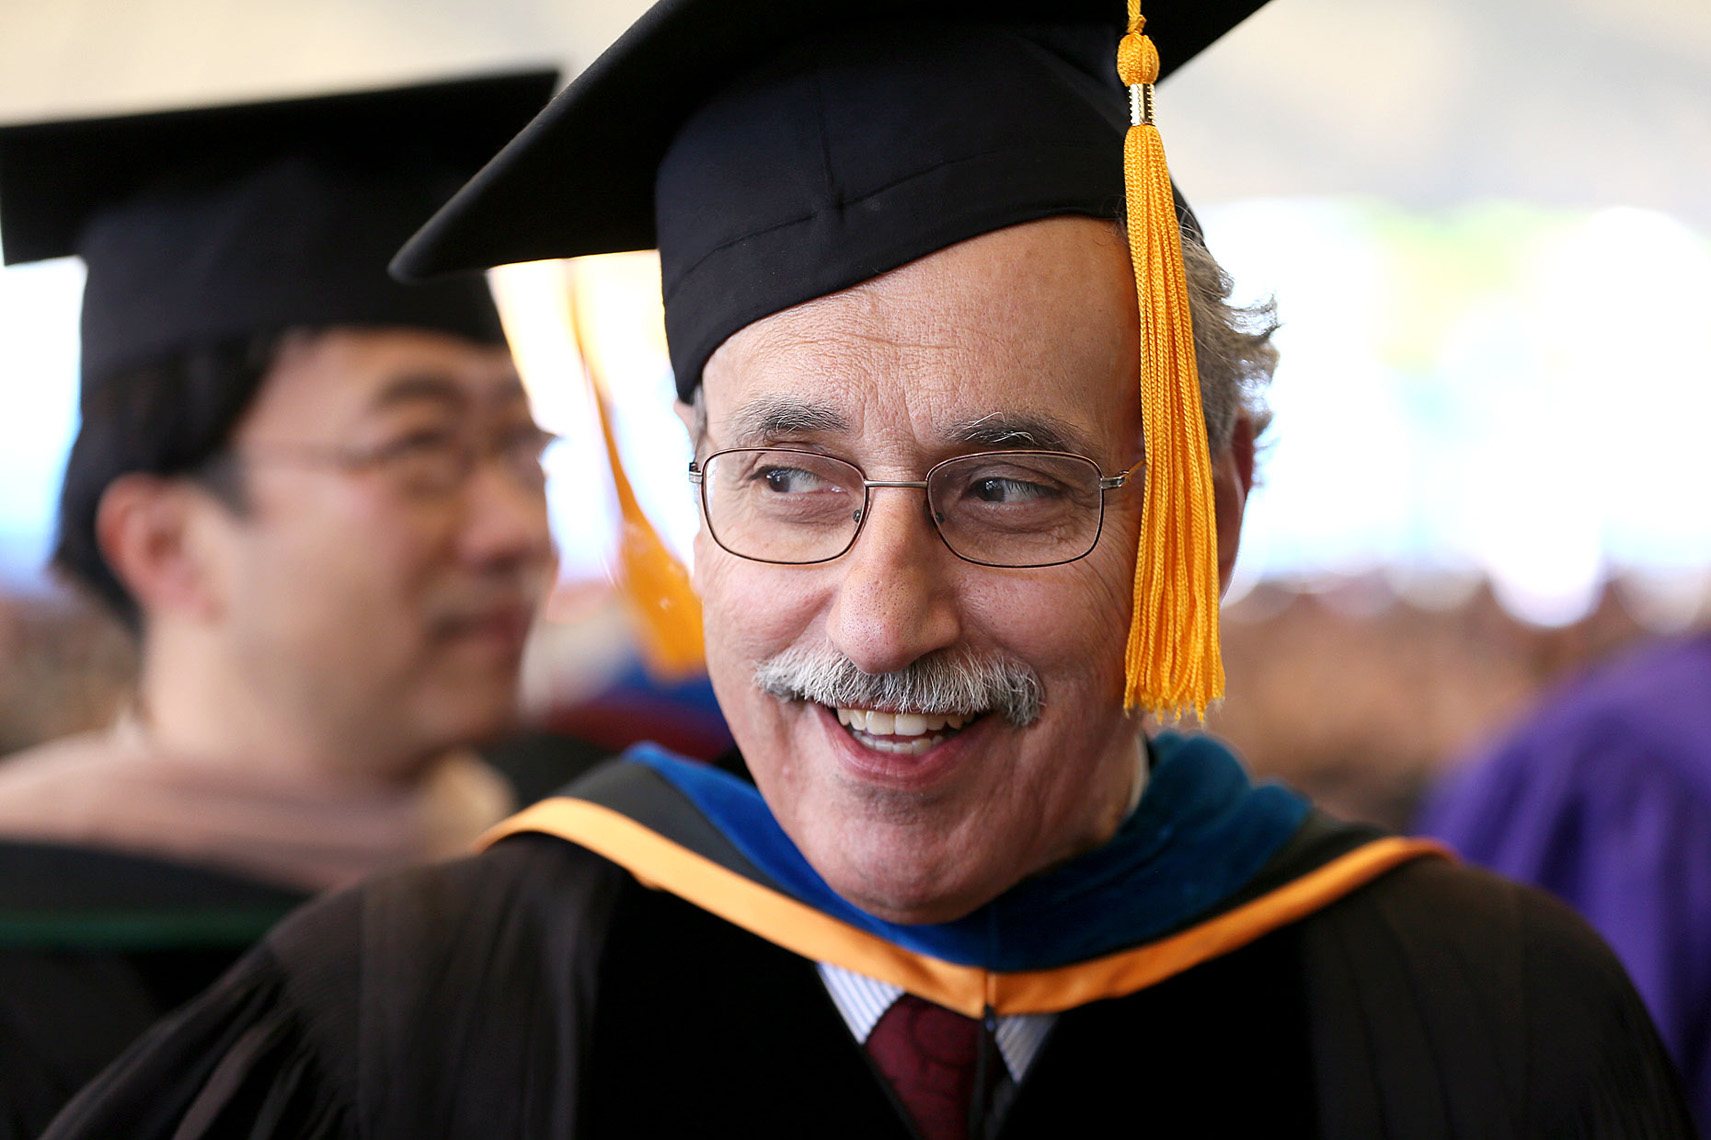 A Suffolk University professor marches into commencement services.